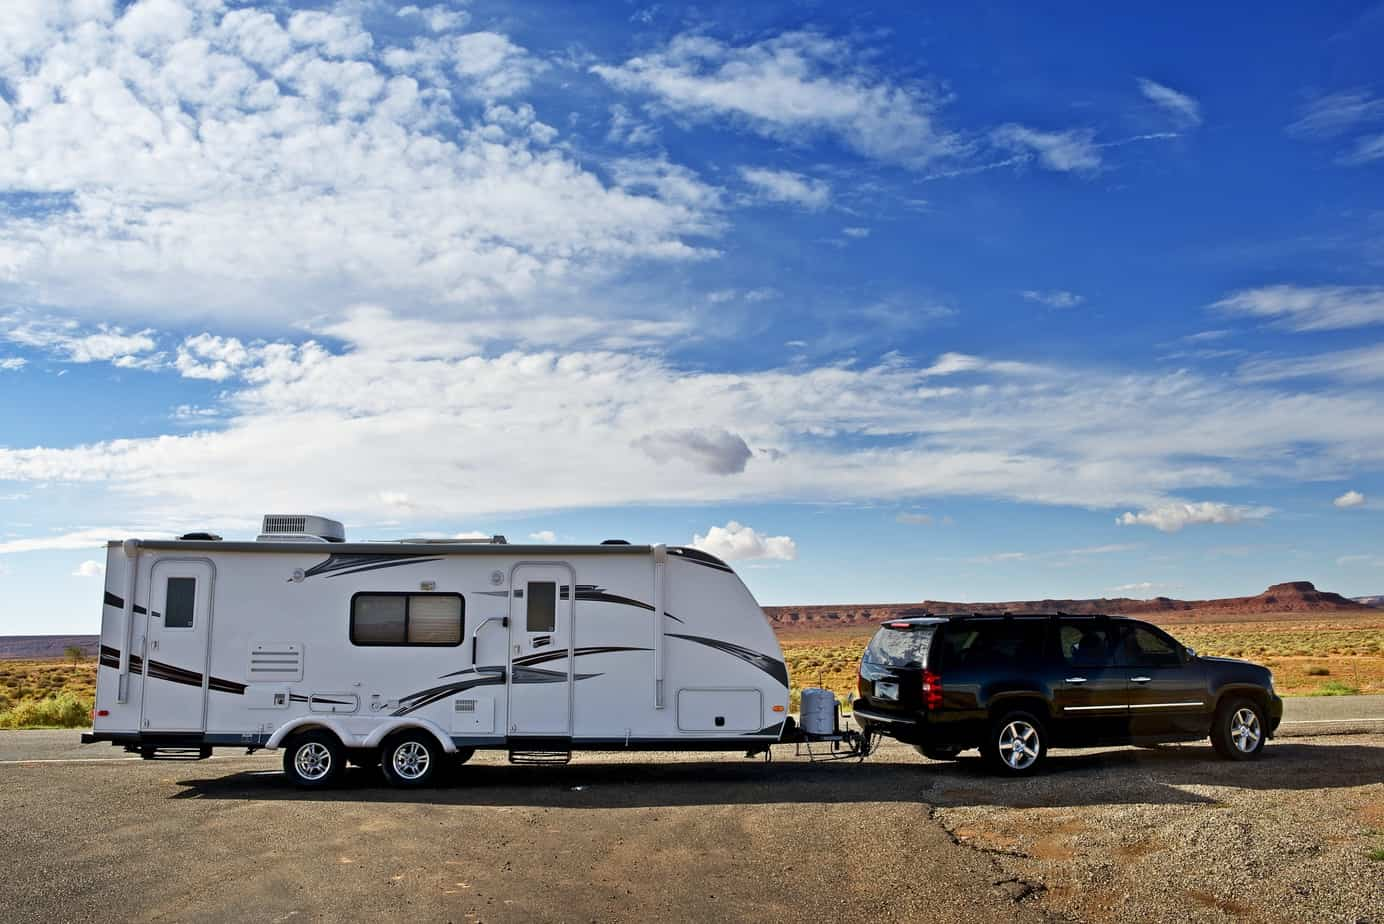 travel trailer being pulled by SUV in desert location - full time RV living